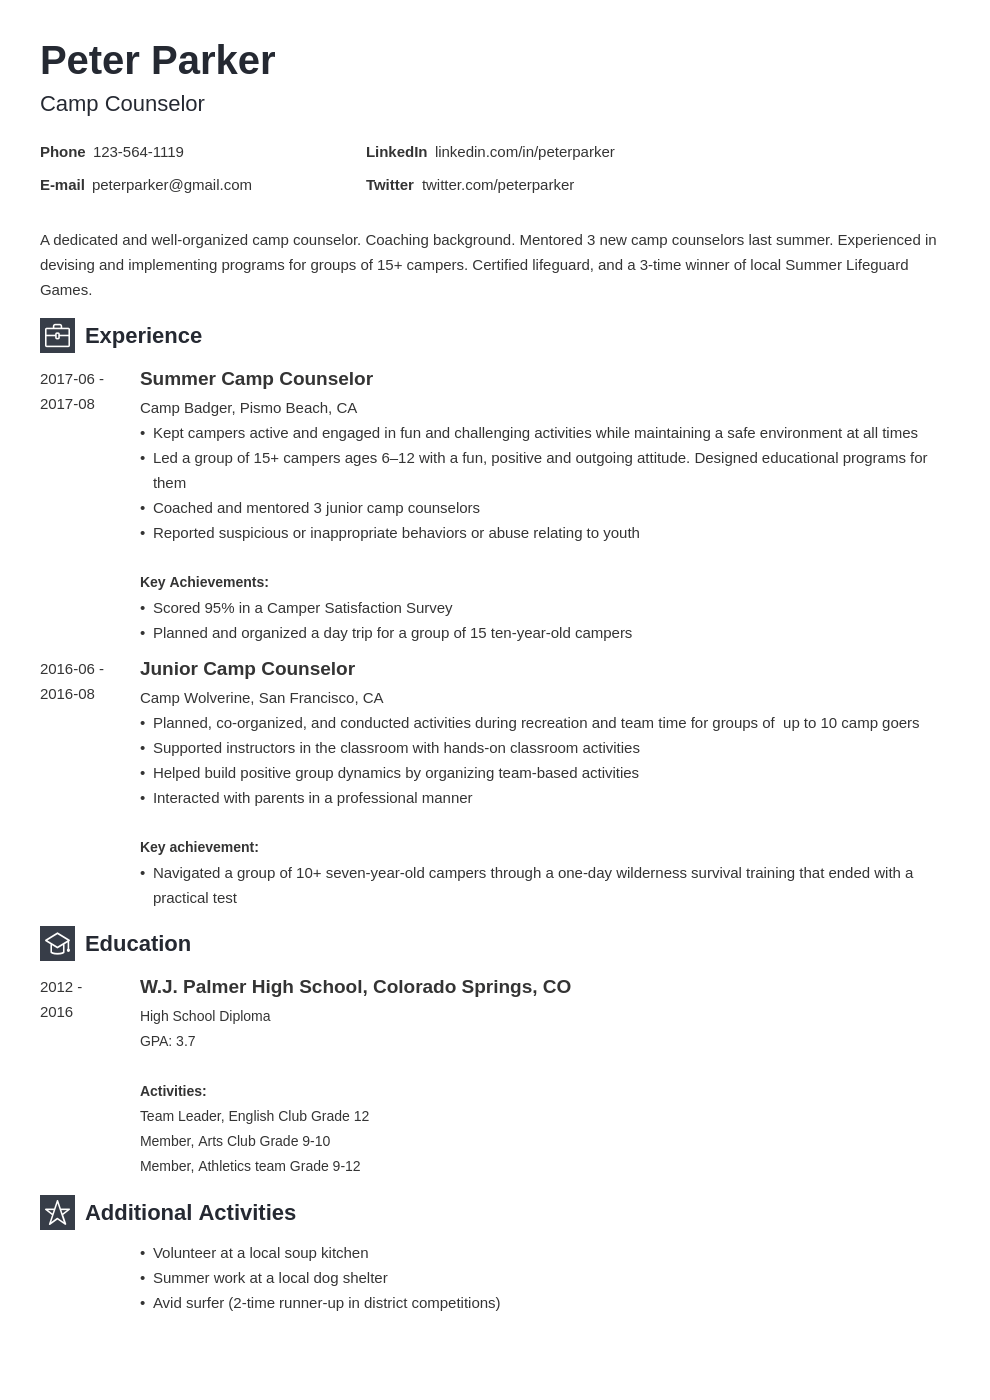 Camp Counselor Resume Example Template Newcast Resume Examples Job Resume Examples Resume